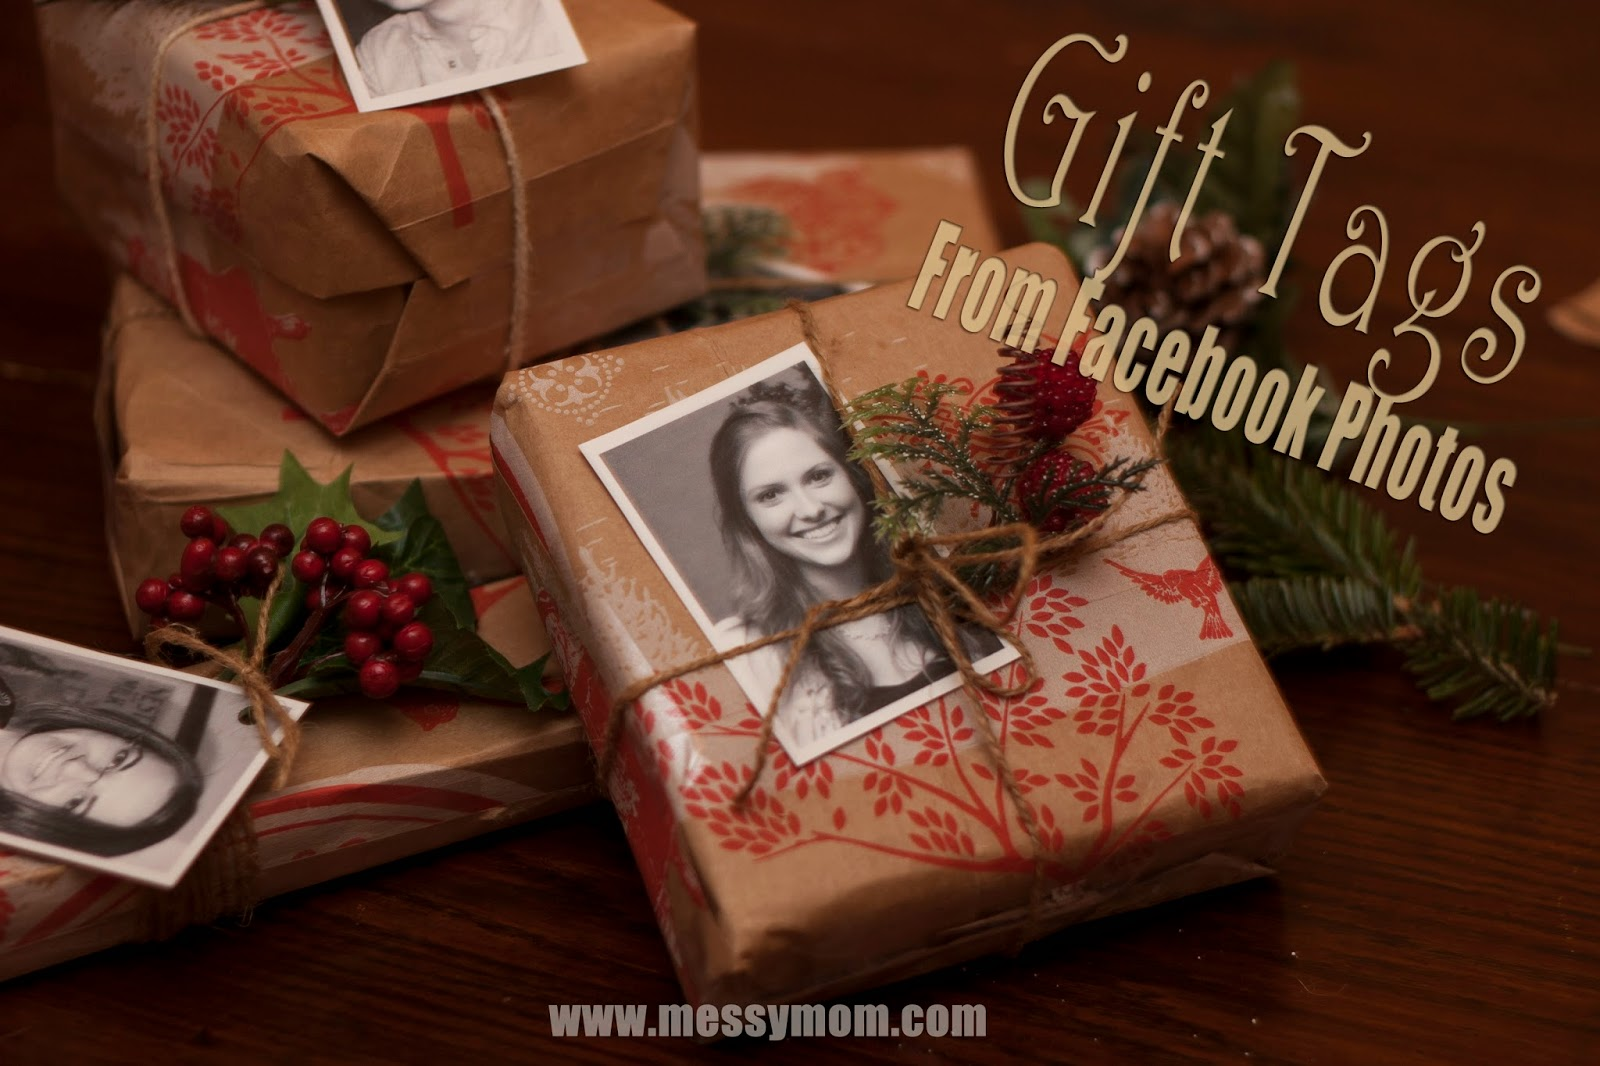 Personalized Gift Tags Using FaceBook Photos